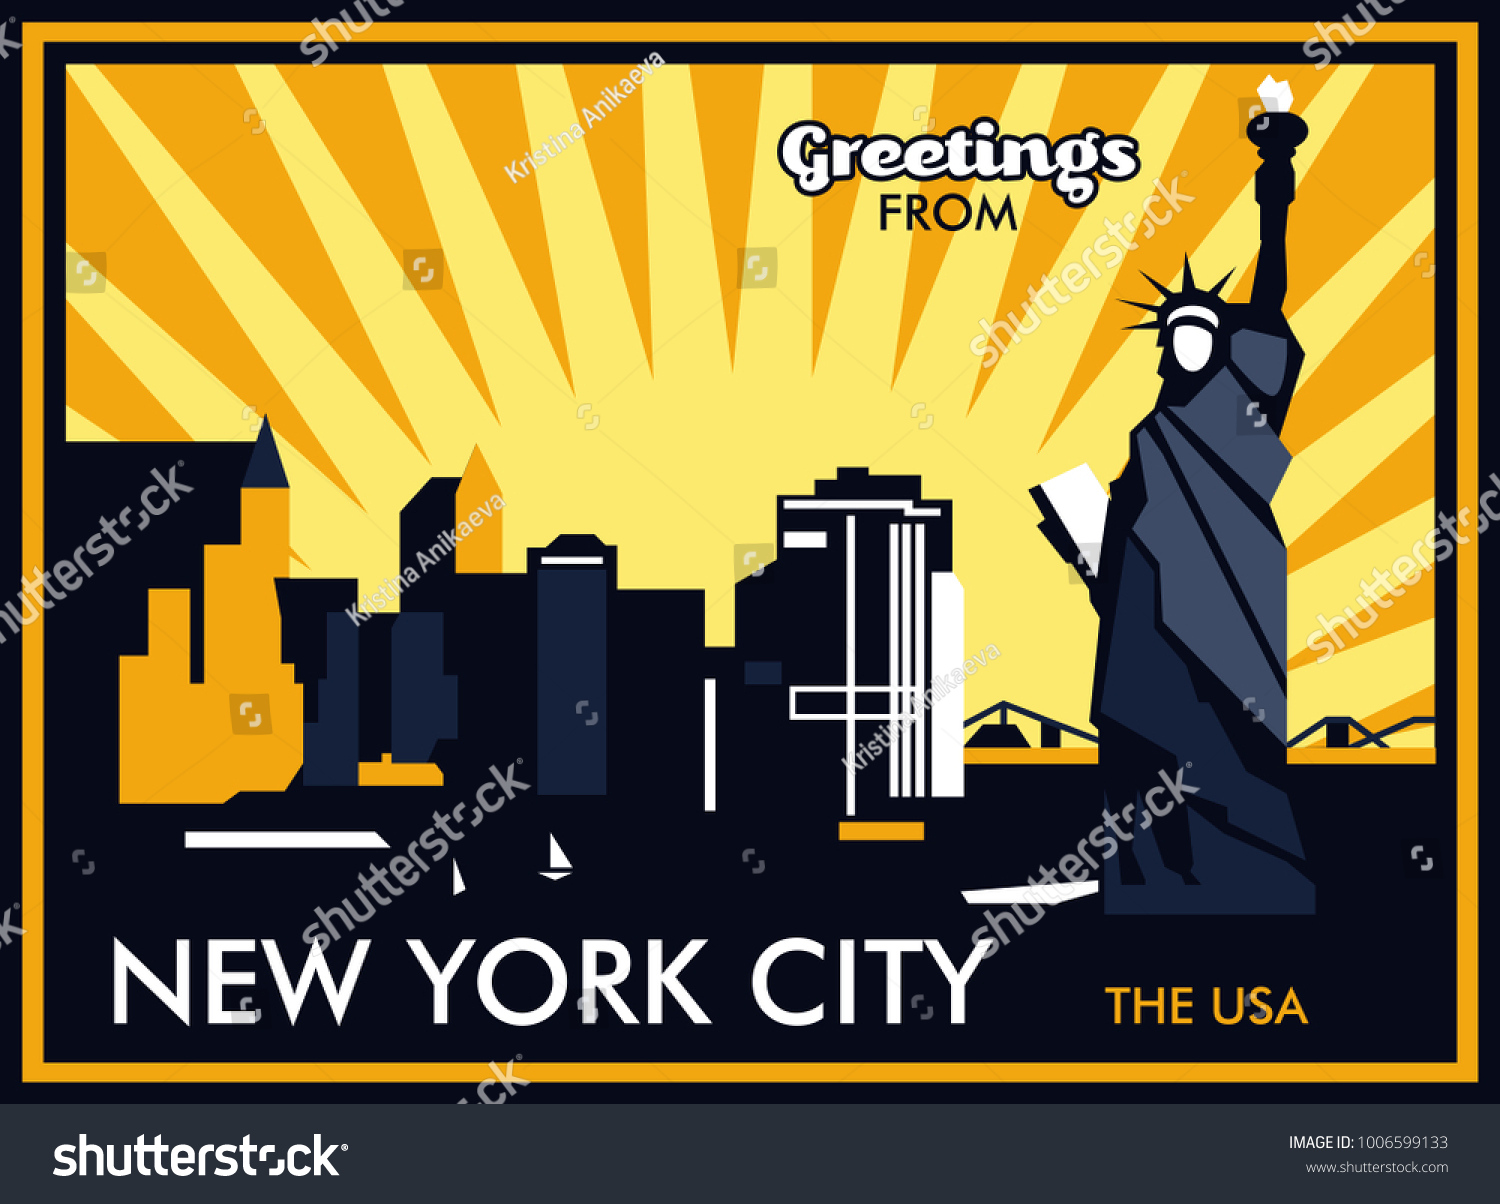 Greetings new york city usa vector stock vector 1006599133 greetings from new york city the usa vector postcard kristyandbryce Images